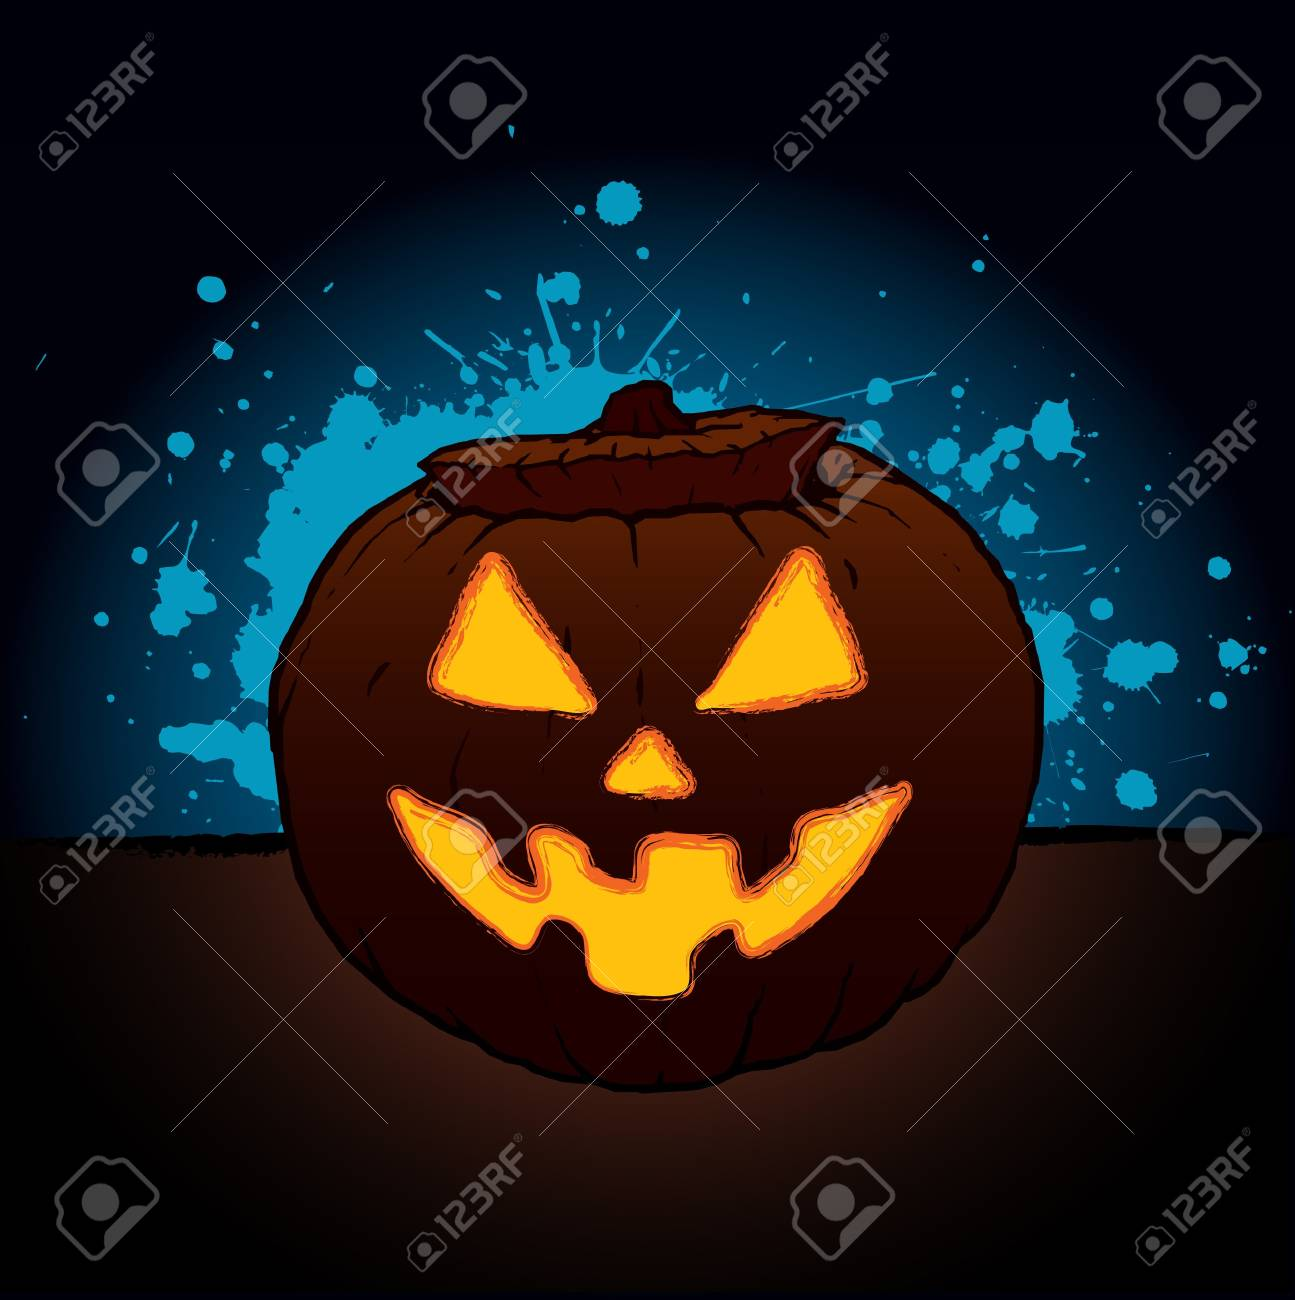 Pumpkin Lantern for Halloween Stock Vector - 14556509